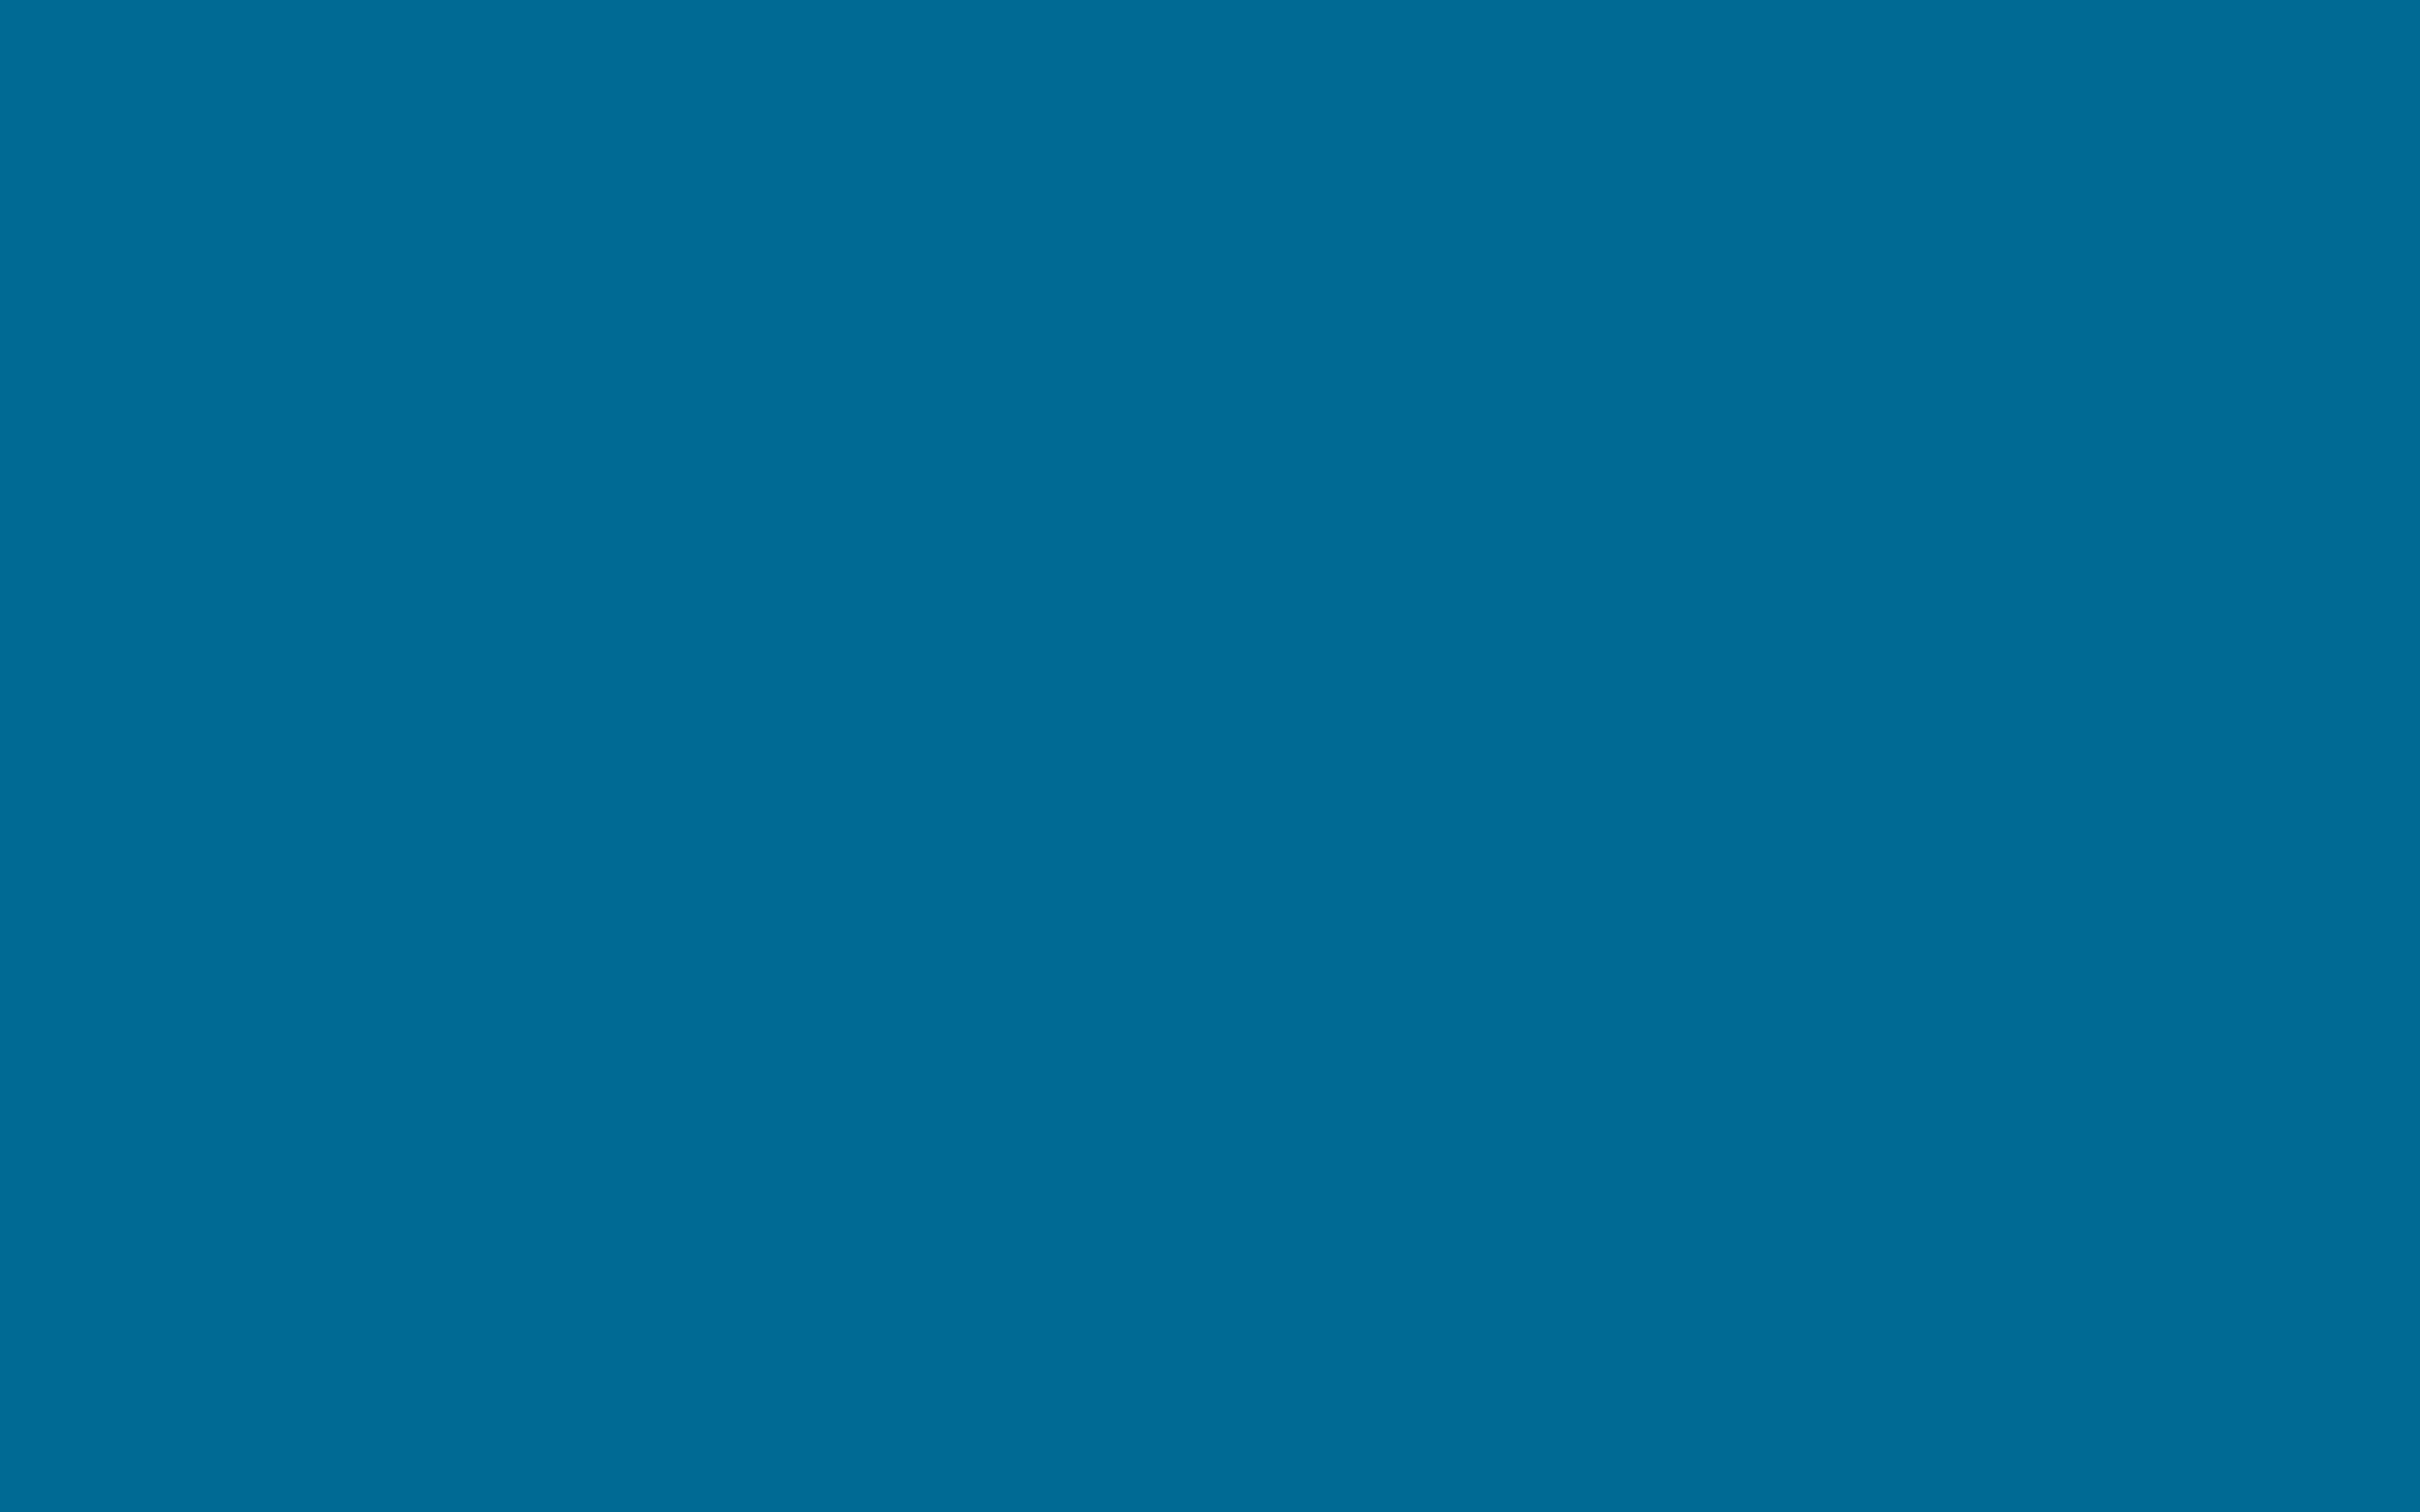 2560x1600 Sea Blue Solid Color Background